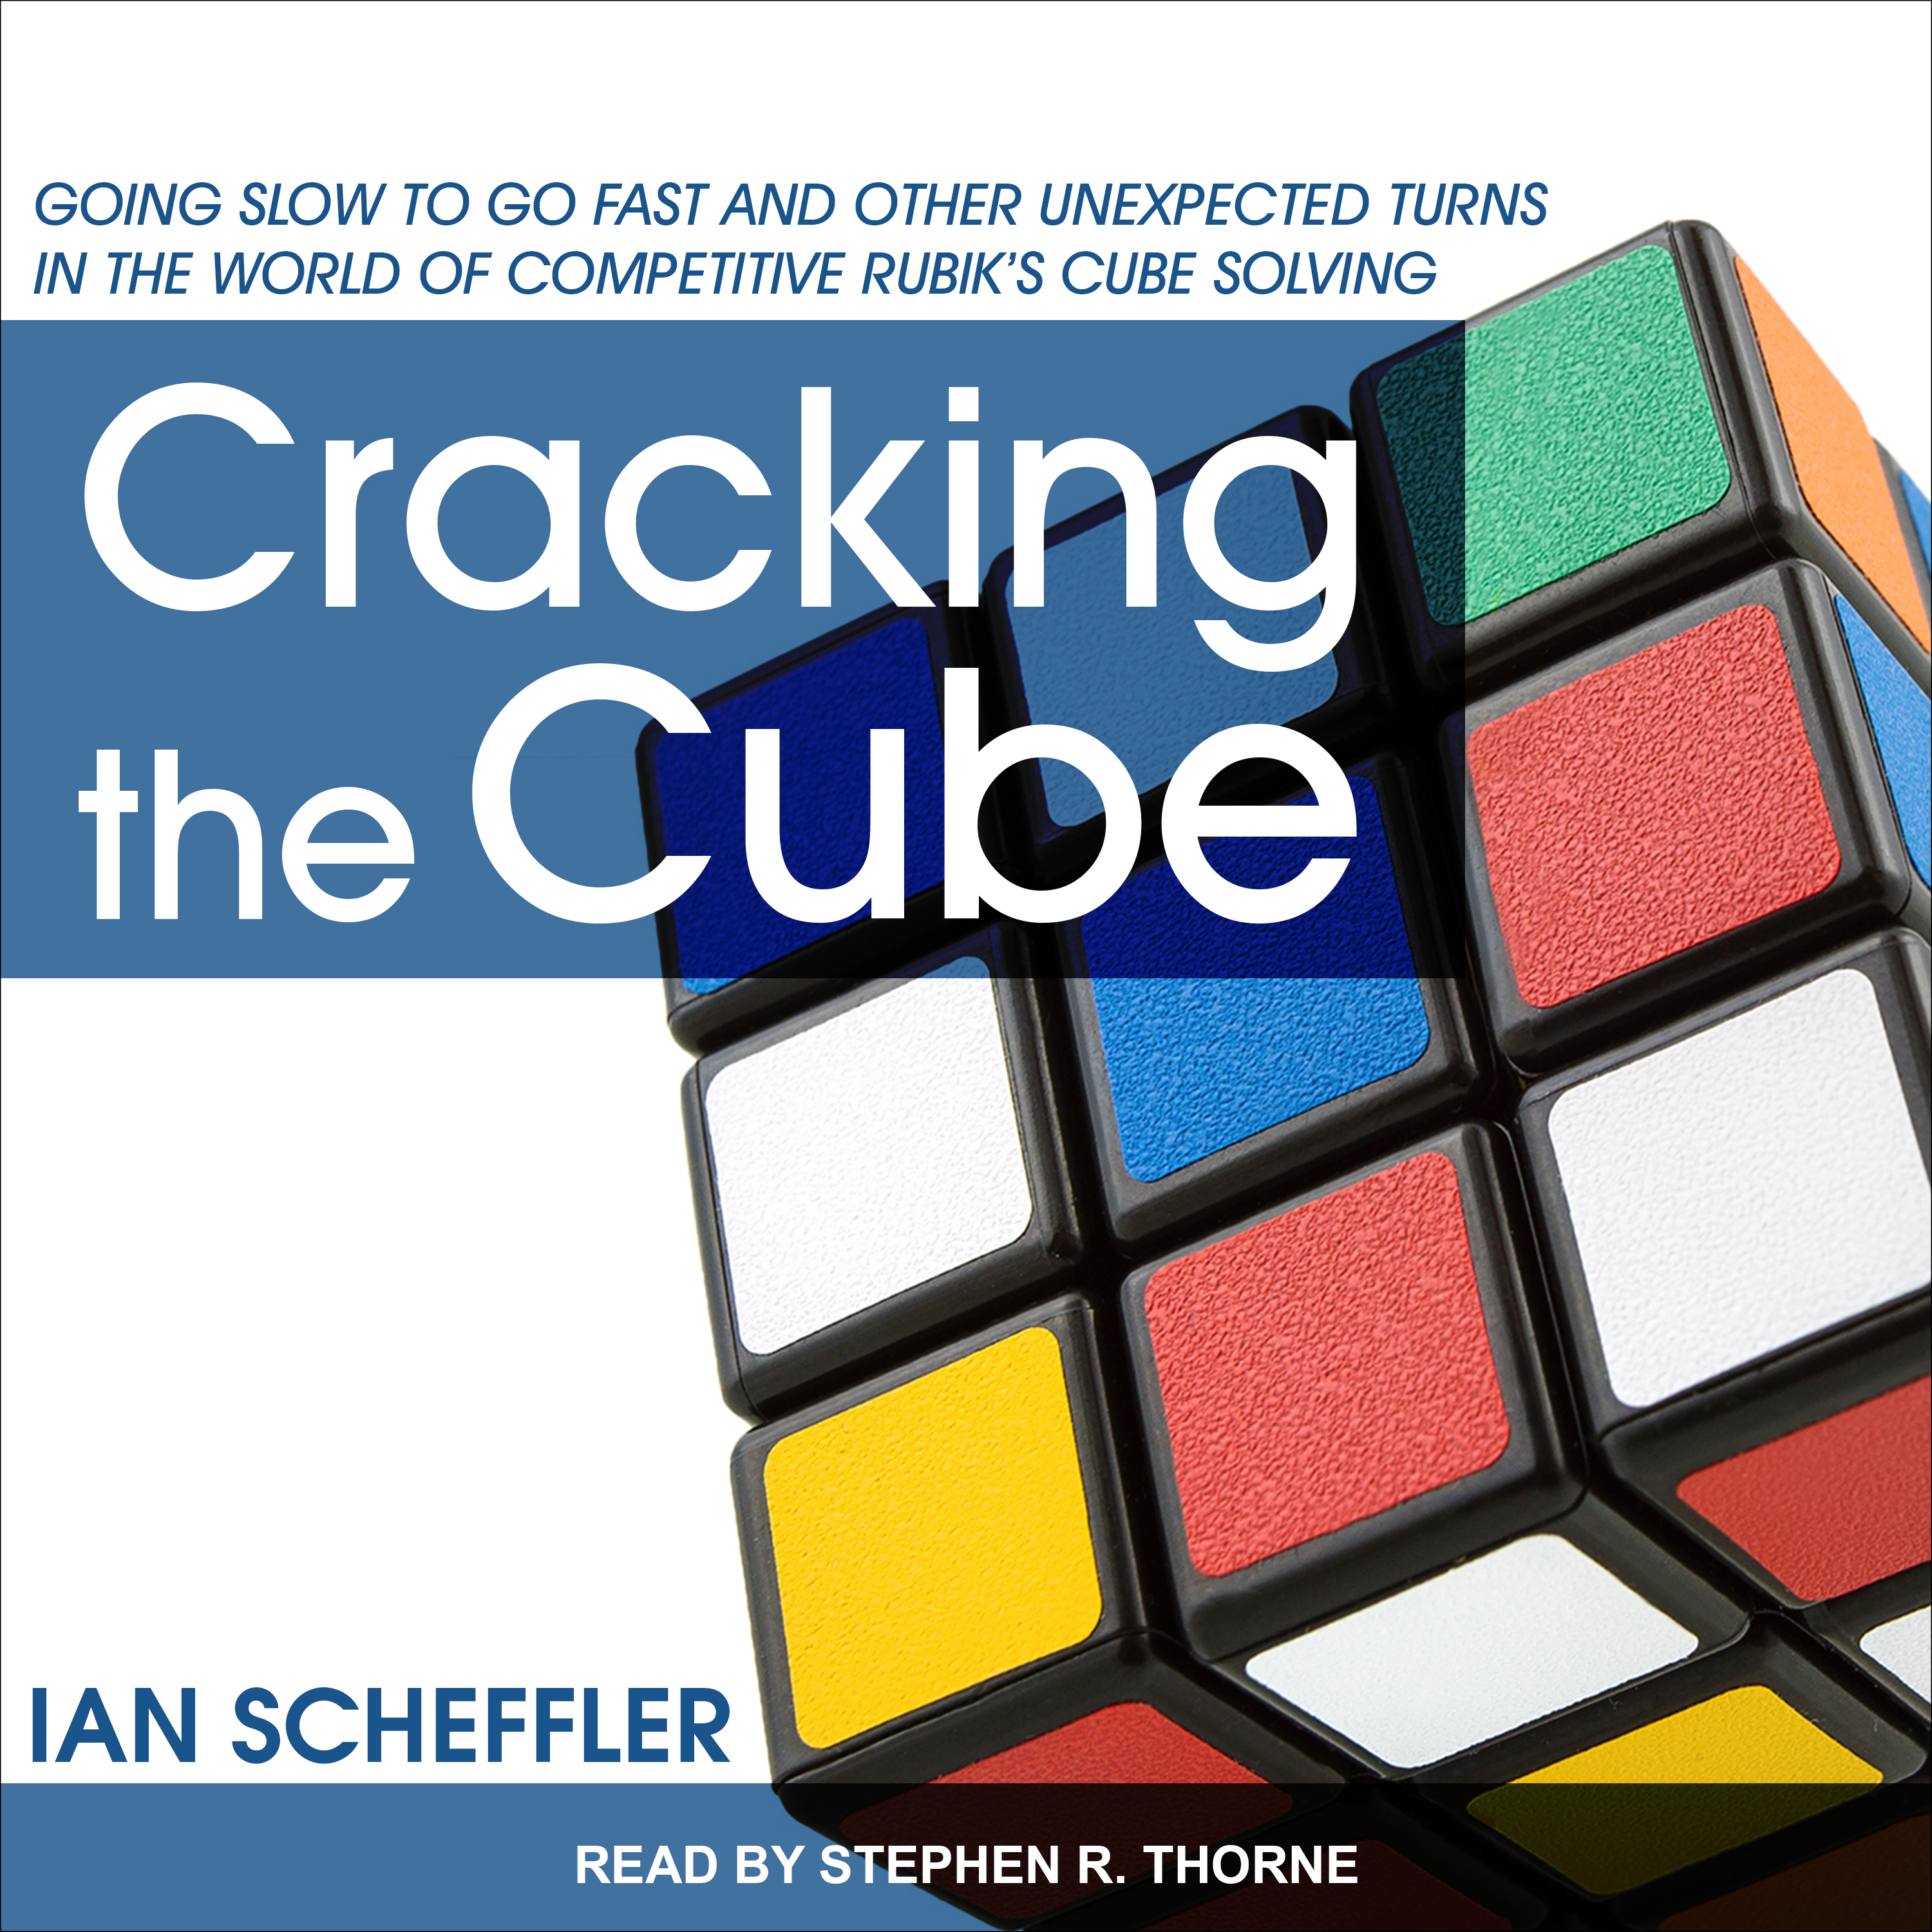 Printable Cracking the Cube: Going Slow to Go Fast and Other Unexpected Turns in the World of Competitive Rubik's Cube Solving Audiobook Cover Art